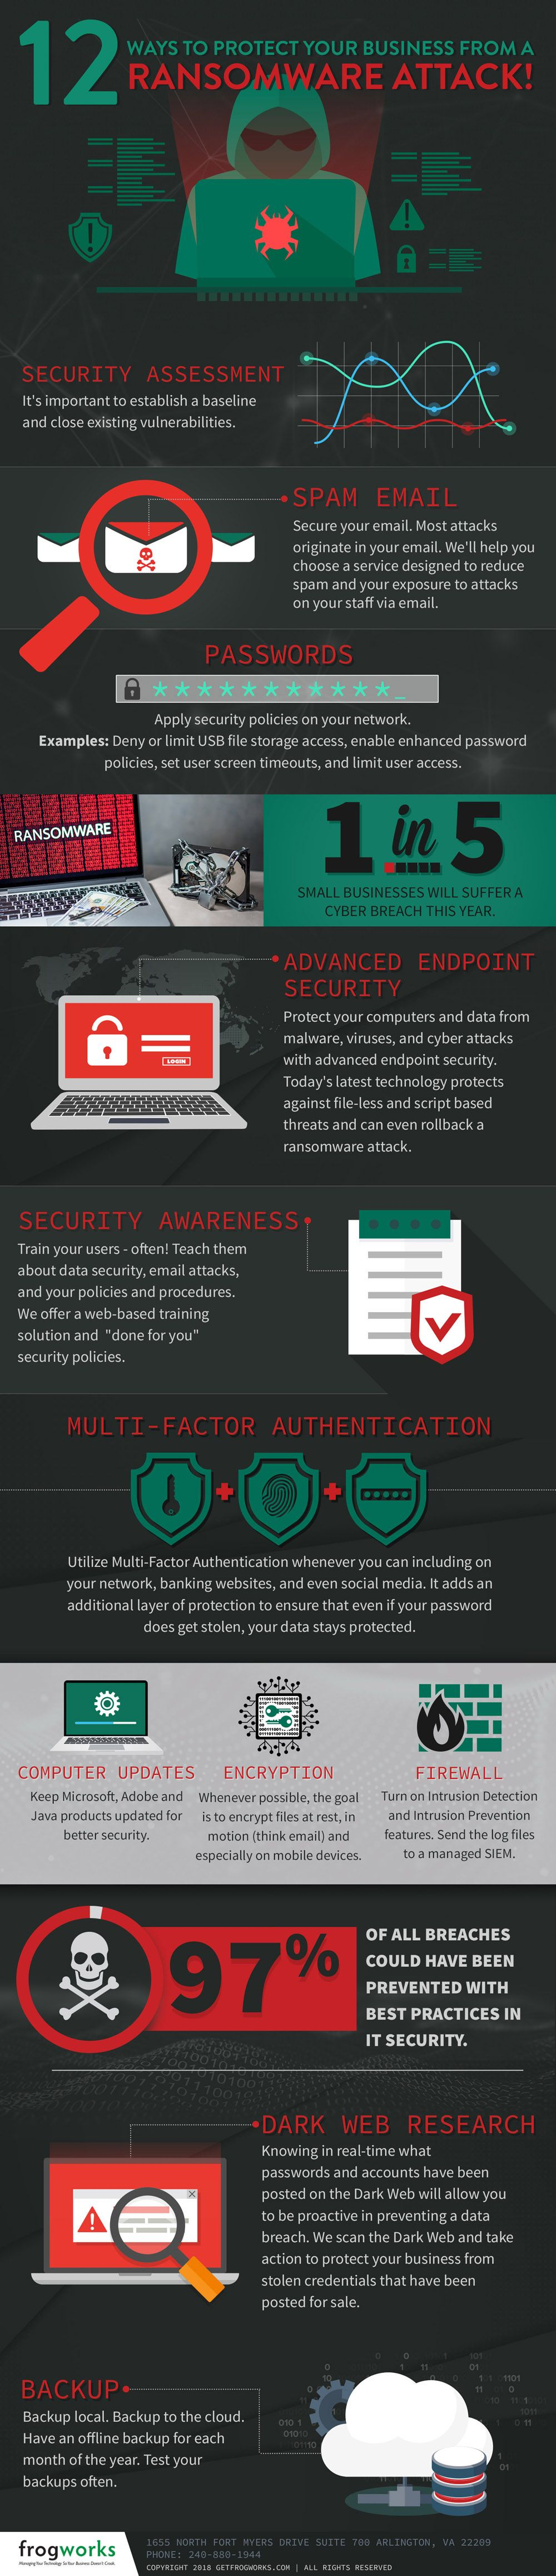 12 Ways To Protect Your Business From A Ransomware Attack Infographic Cybersecurity Infographic Cyber Security Security Assessment